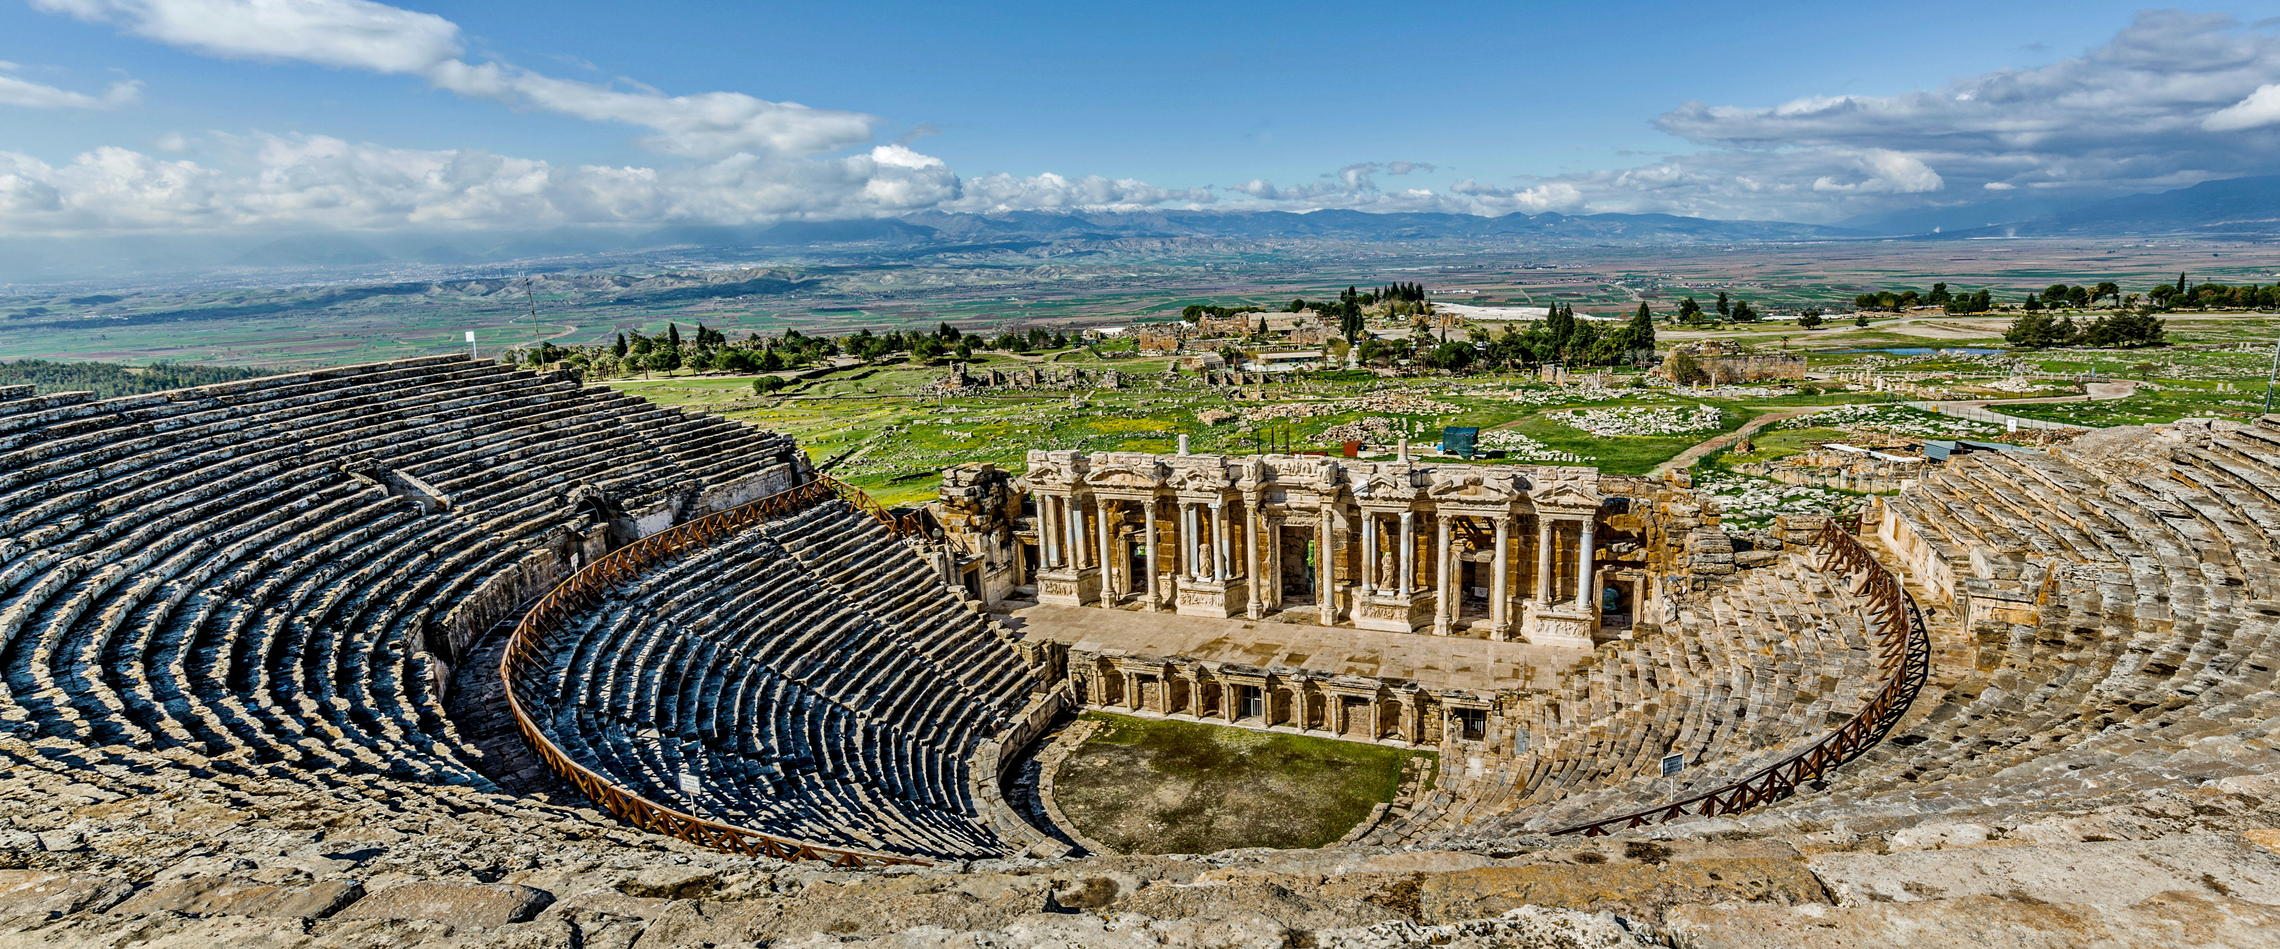 Turkey 2016 Hierapolis